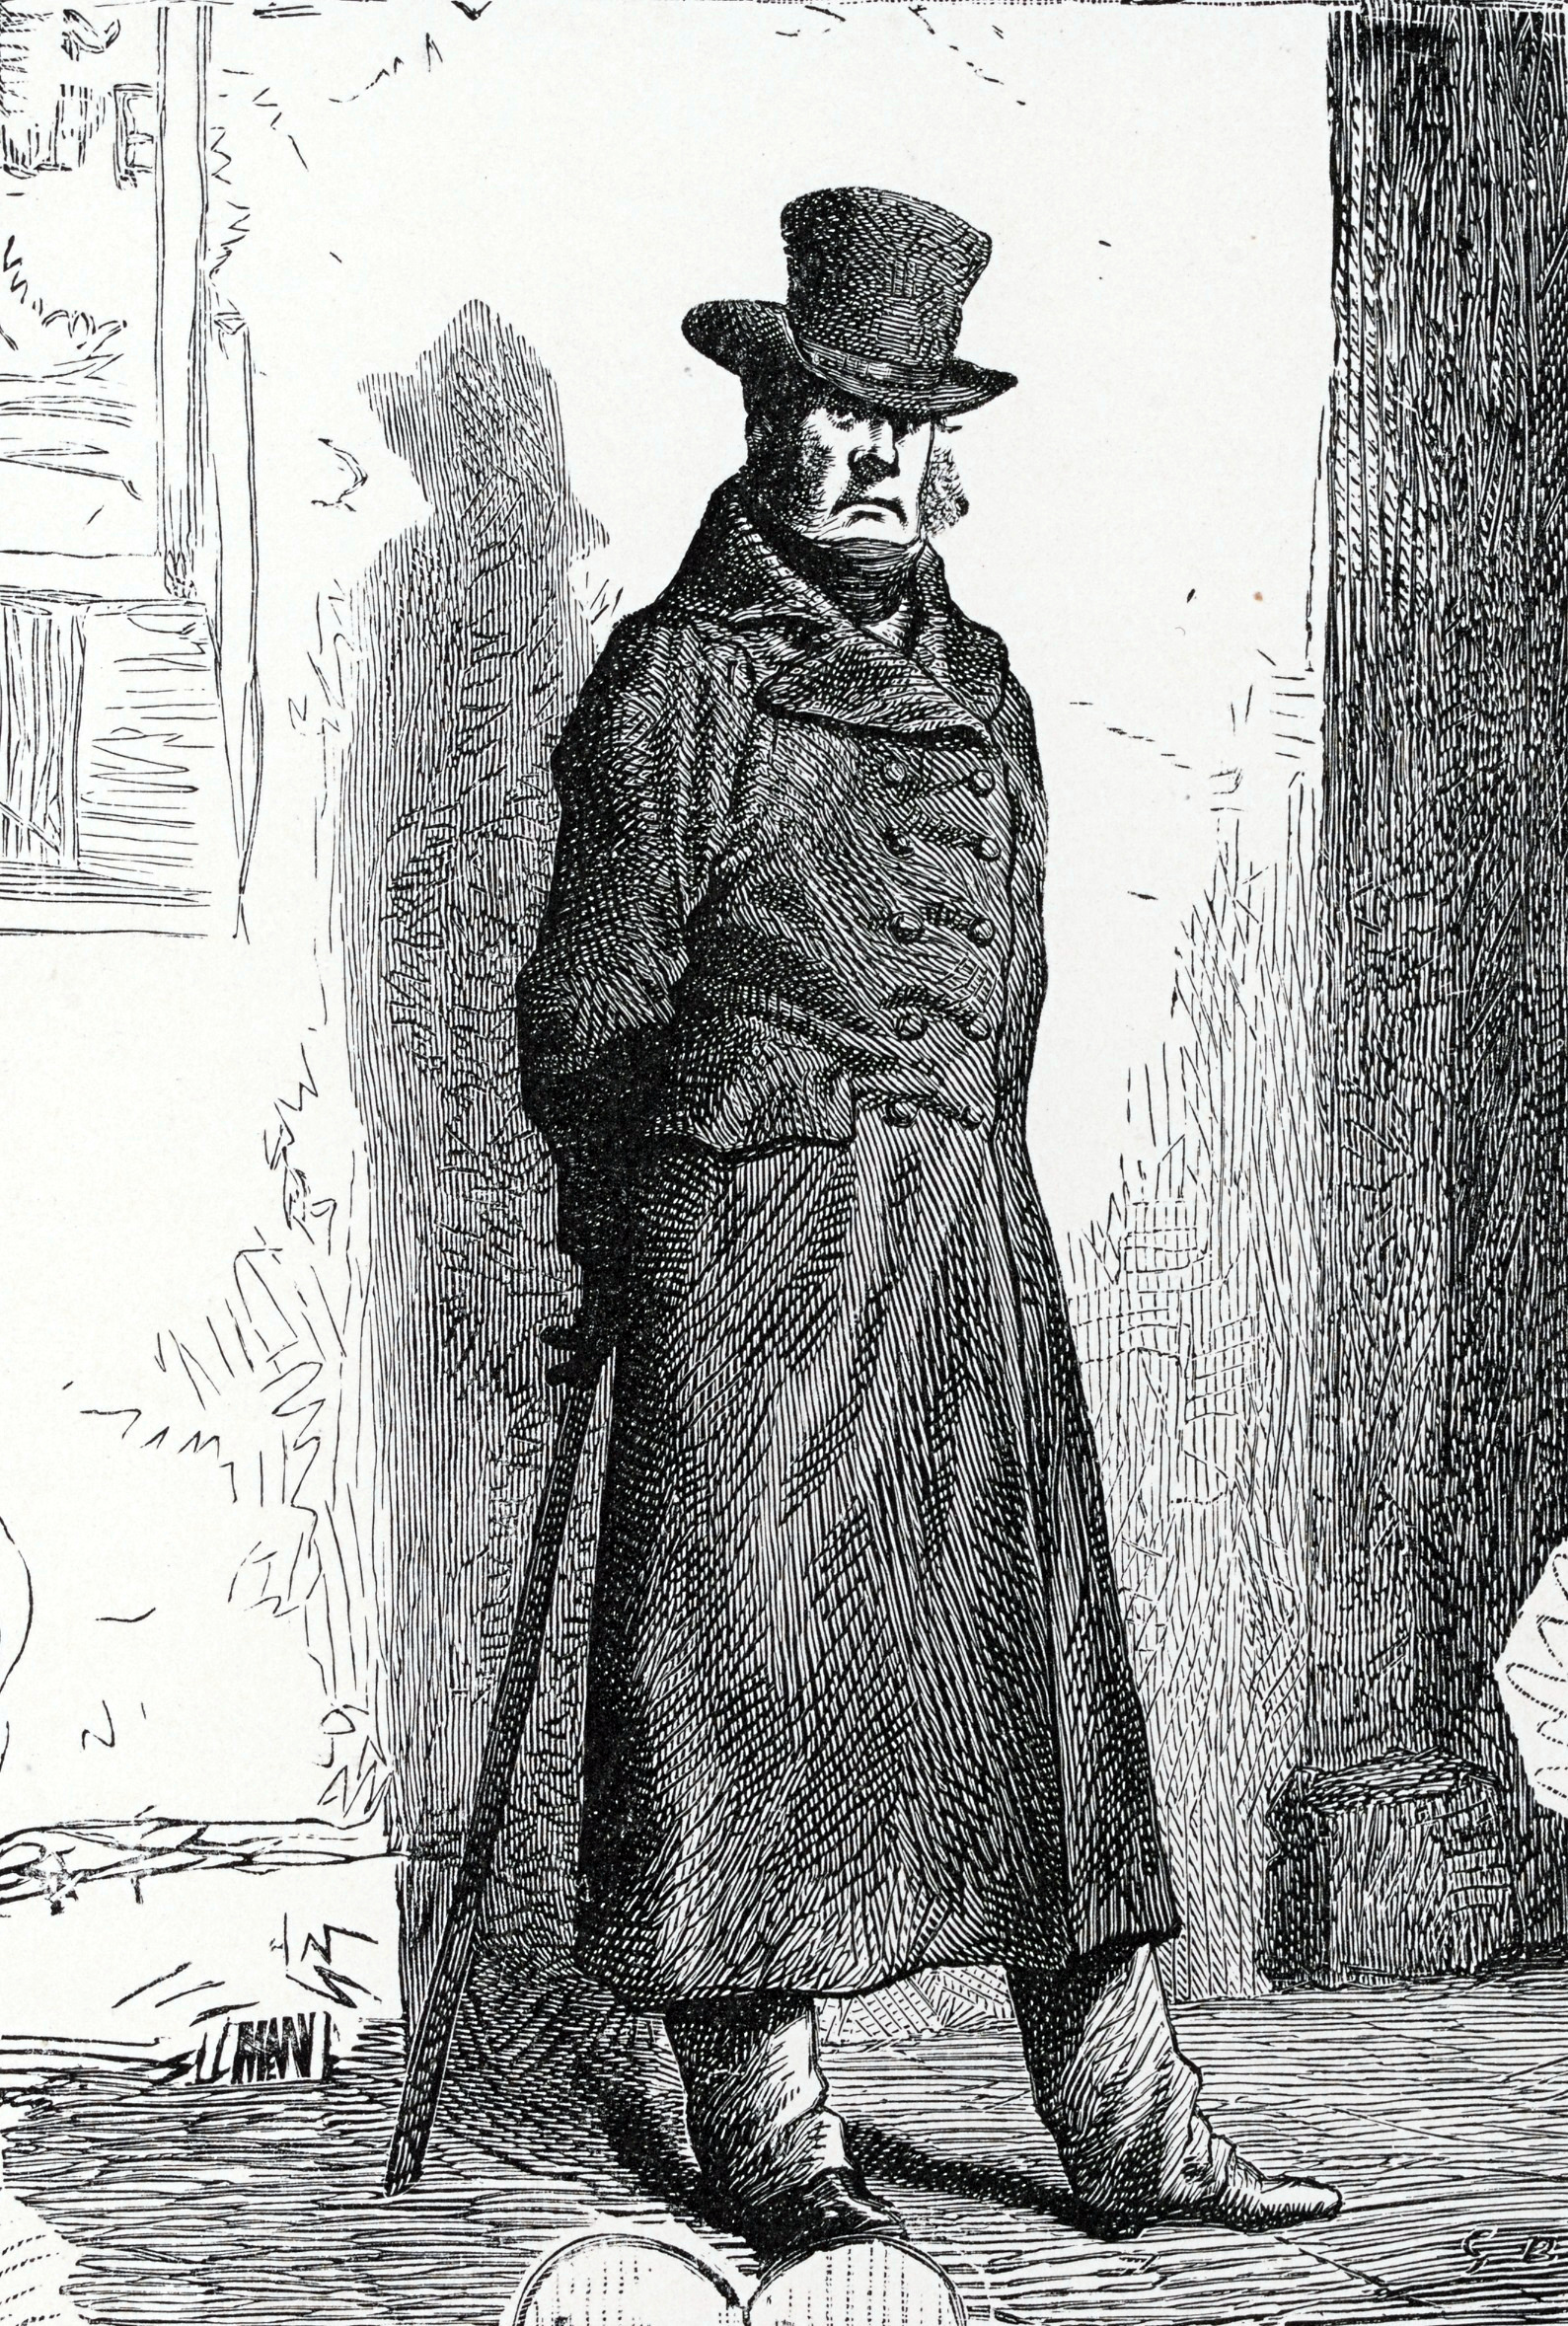 an analysis of the character of javert in the play les miserables by victor hugo